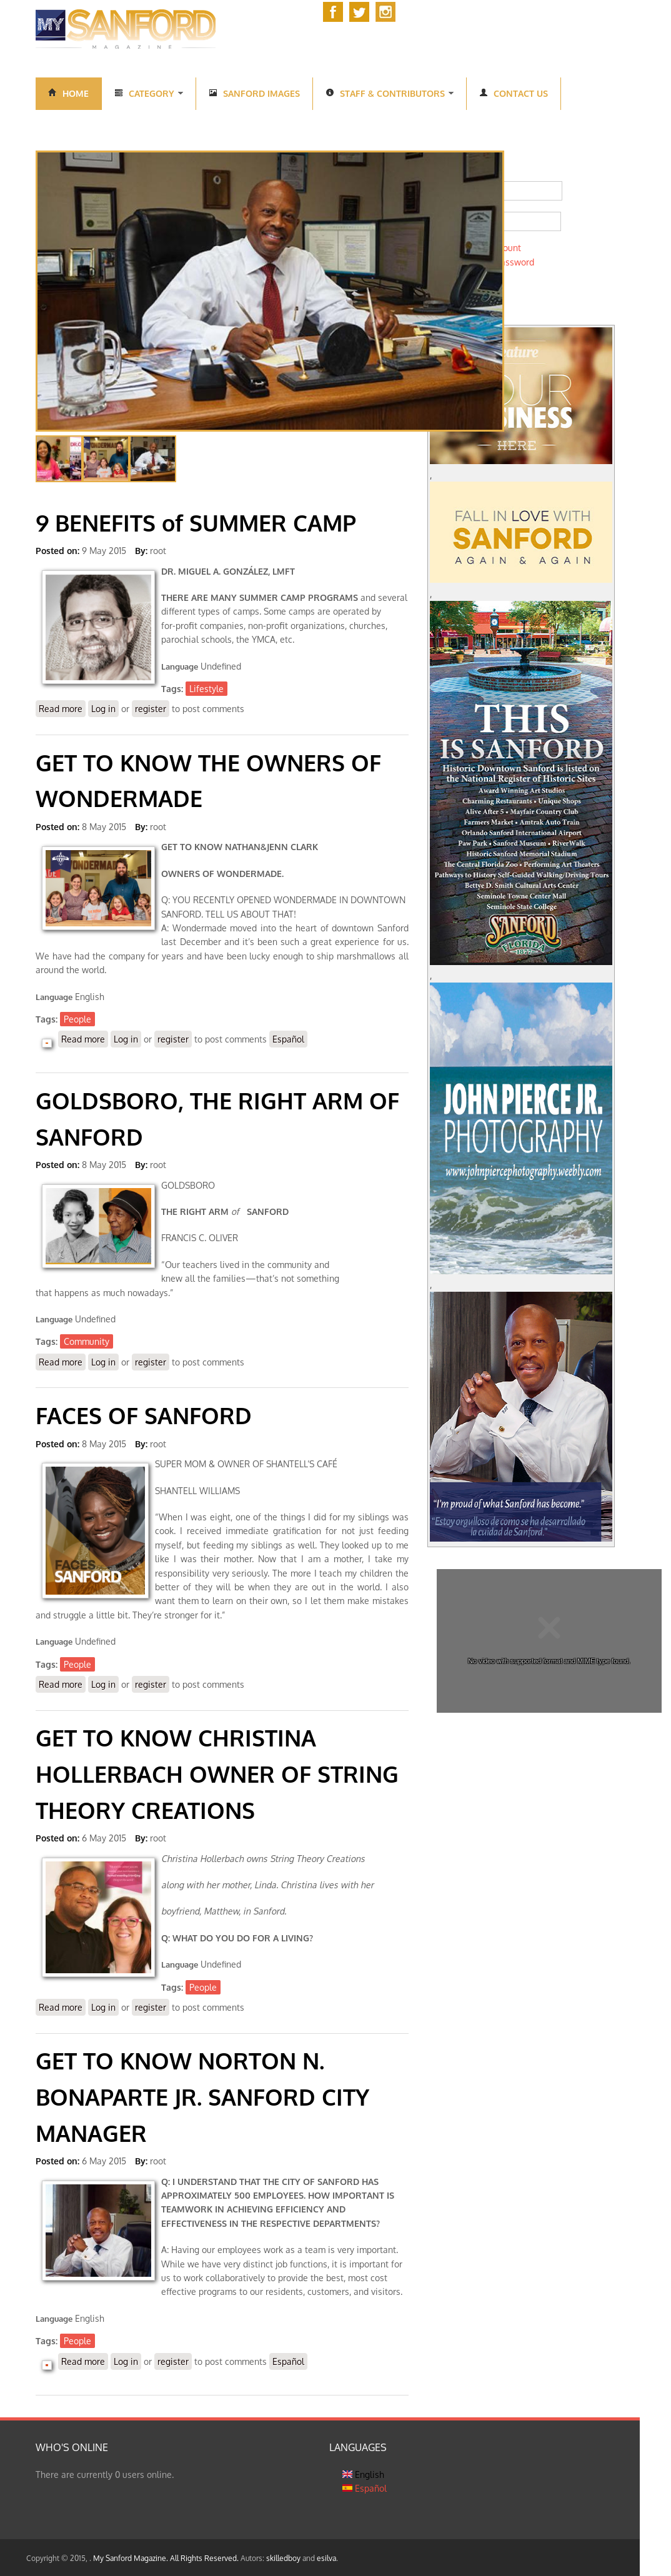 My Sanford Magazine Competitors, Revenue and Employees